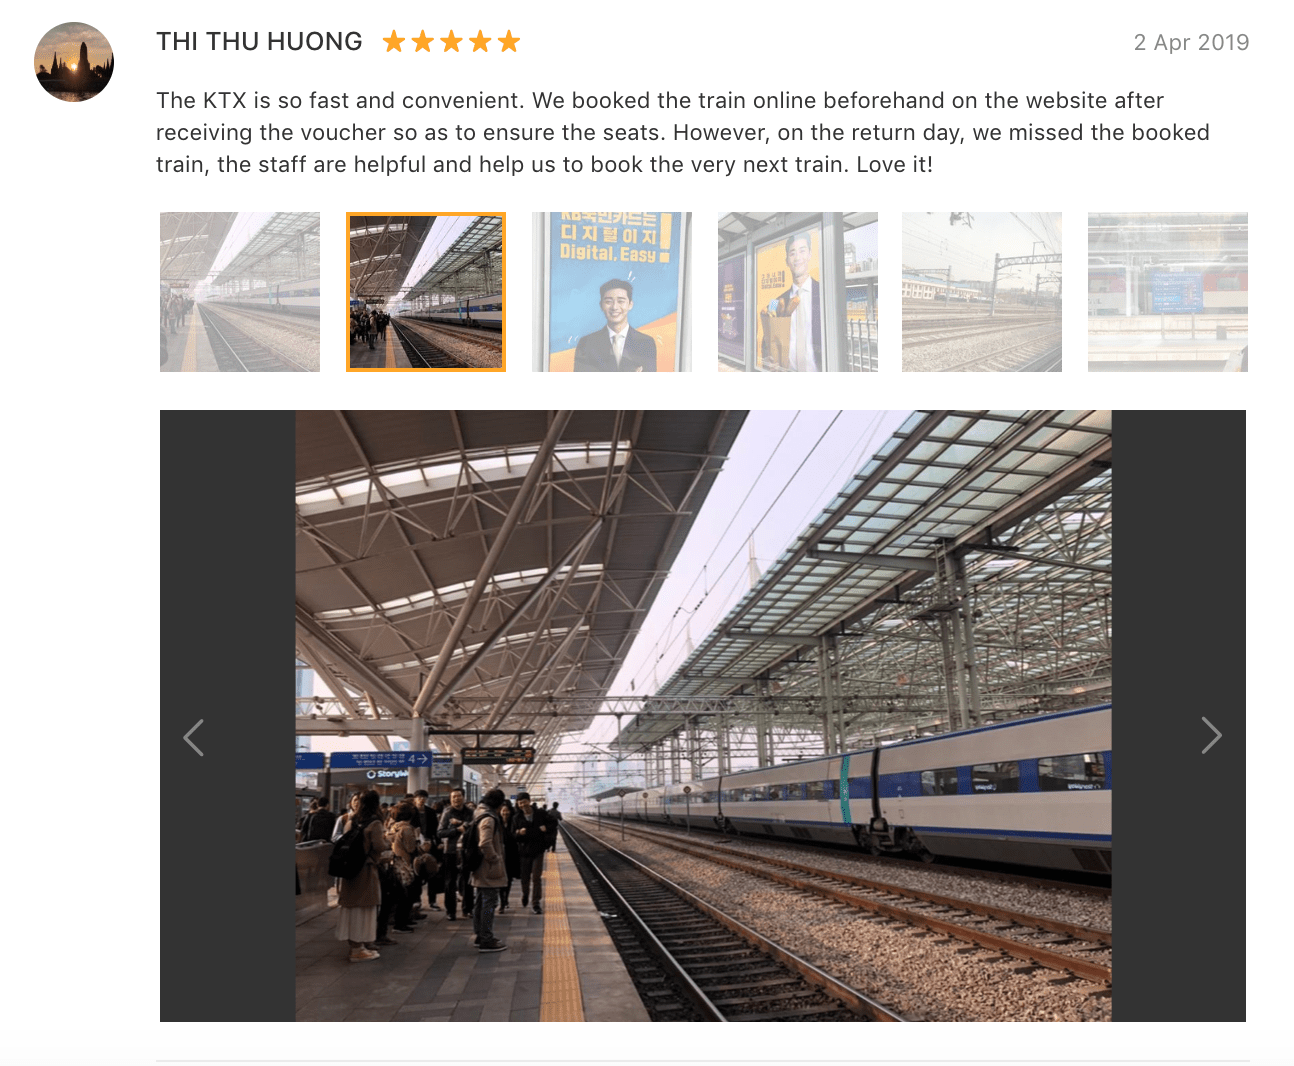 The KTX is so fast and convenient. We booked the train online beforehand on the website after receiving the [Klook] voucher so as to ensure the seats…Love it! -